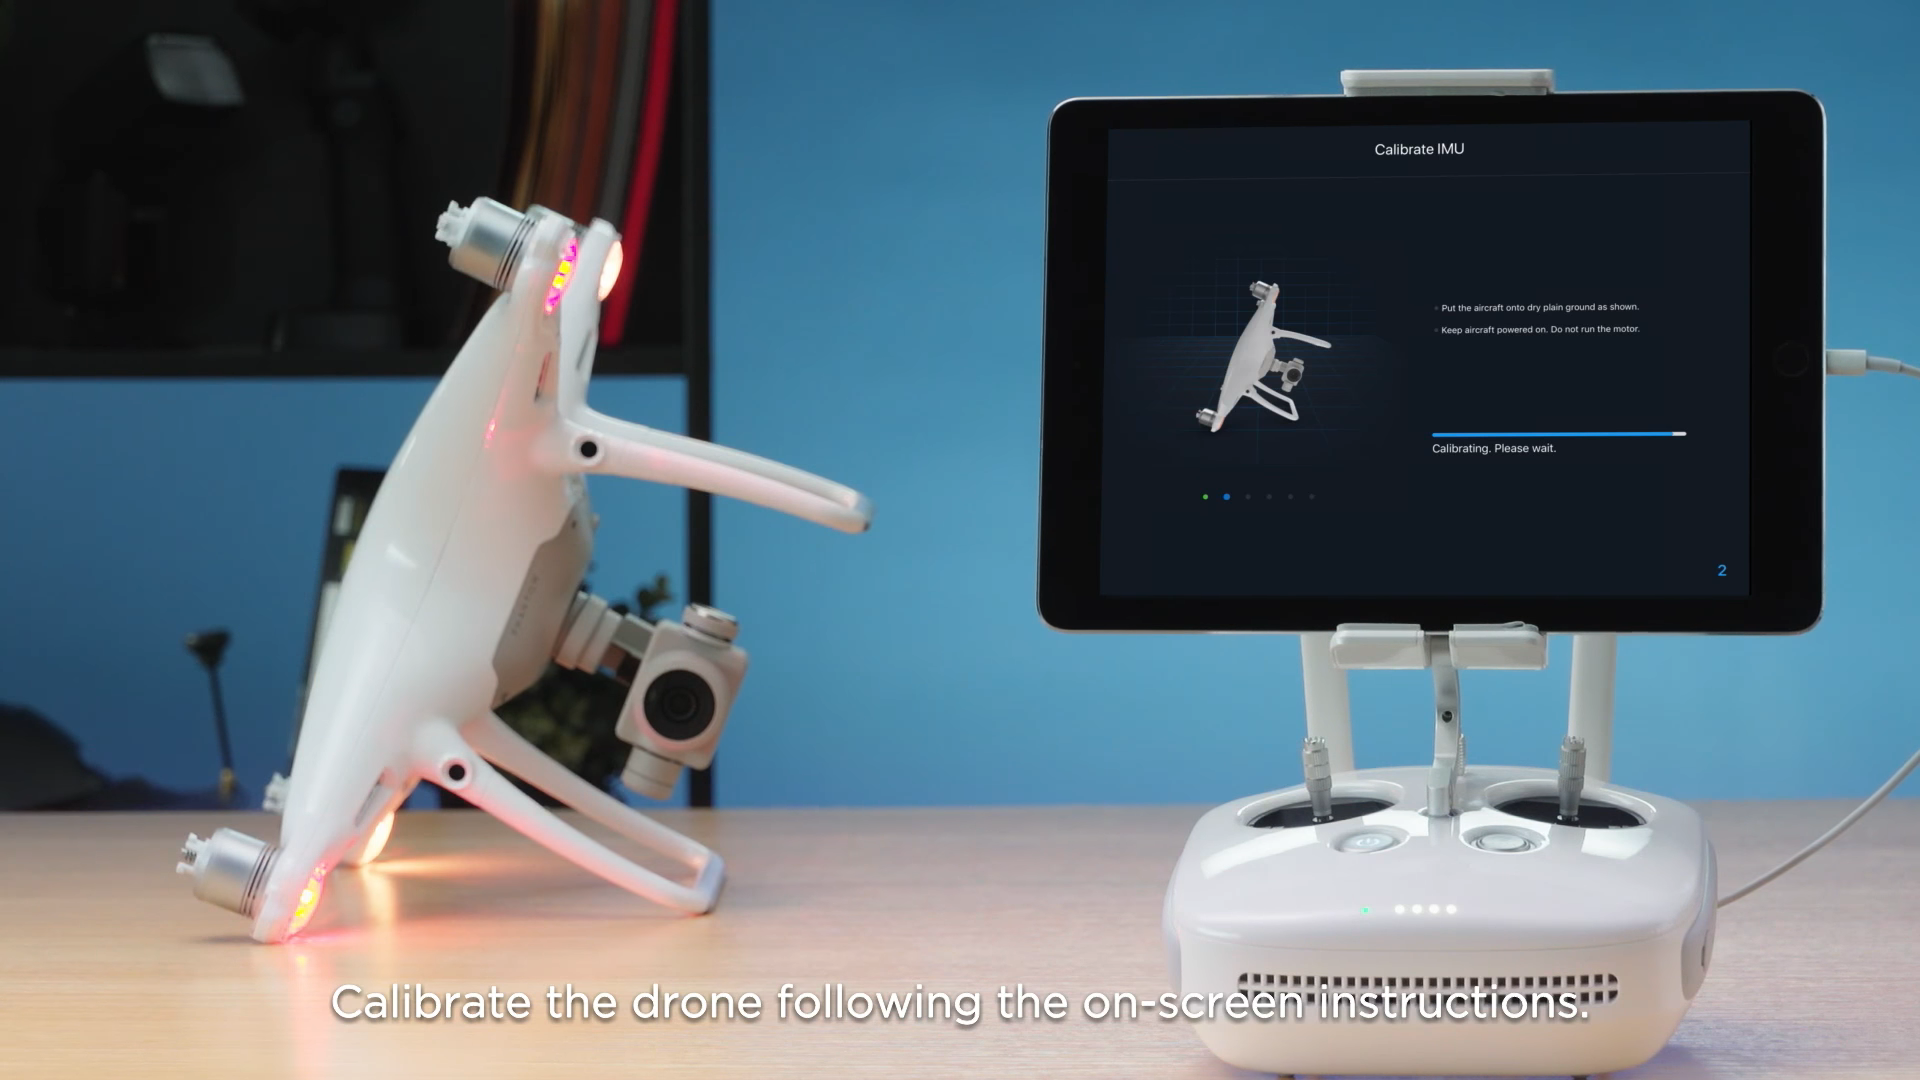 "OcuSync Transmission System The DJI Phantom 4 Pro V2.0 features a new dual-band OcuSync transmission system, automatically switching between 2.4GHz and 5.8GHz. The controller identifies which frequency has the lowest interference and switch to provide the clearest transmission. The new OcuSync also allows wireless connectivity with the DJI Goggles and Goggles RE and the Phantom 4 Pro V2.0. Removing the restrictions of wires and allowing a reliable connection. DJI Phantom 4 Pro V2.0 Remote Controller The Phantom 4 Pro+ V2.0 remote controller is available with a built-in 5.5"" 1080p screen. The ultra-bright screen has a brightness of 1000 cd/m2 increasing usability in direct sunlight. The screen's brightness is twice as bright as the majority of smartphones and tablets. The remote controller features a microSD card slot, speaker and microphone and an HDMI port. The remote controller has a battery life of up to five hours. Propulsion System The DJI Phantom 4 Pro V2.0 features an all-new quieter propulsion system. Newly designed 9455S propellers and FOC ESC drivers result in a 4dB noise reduction. The sinusoidal current is also improved, increasing the Phantom 4 Pro V2.0's stability in flight"